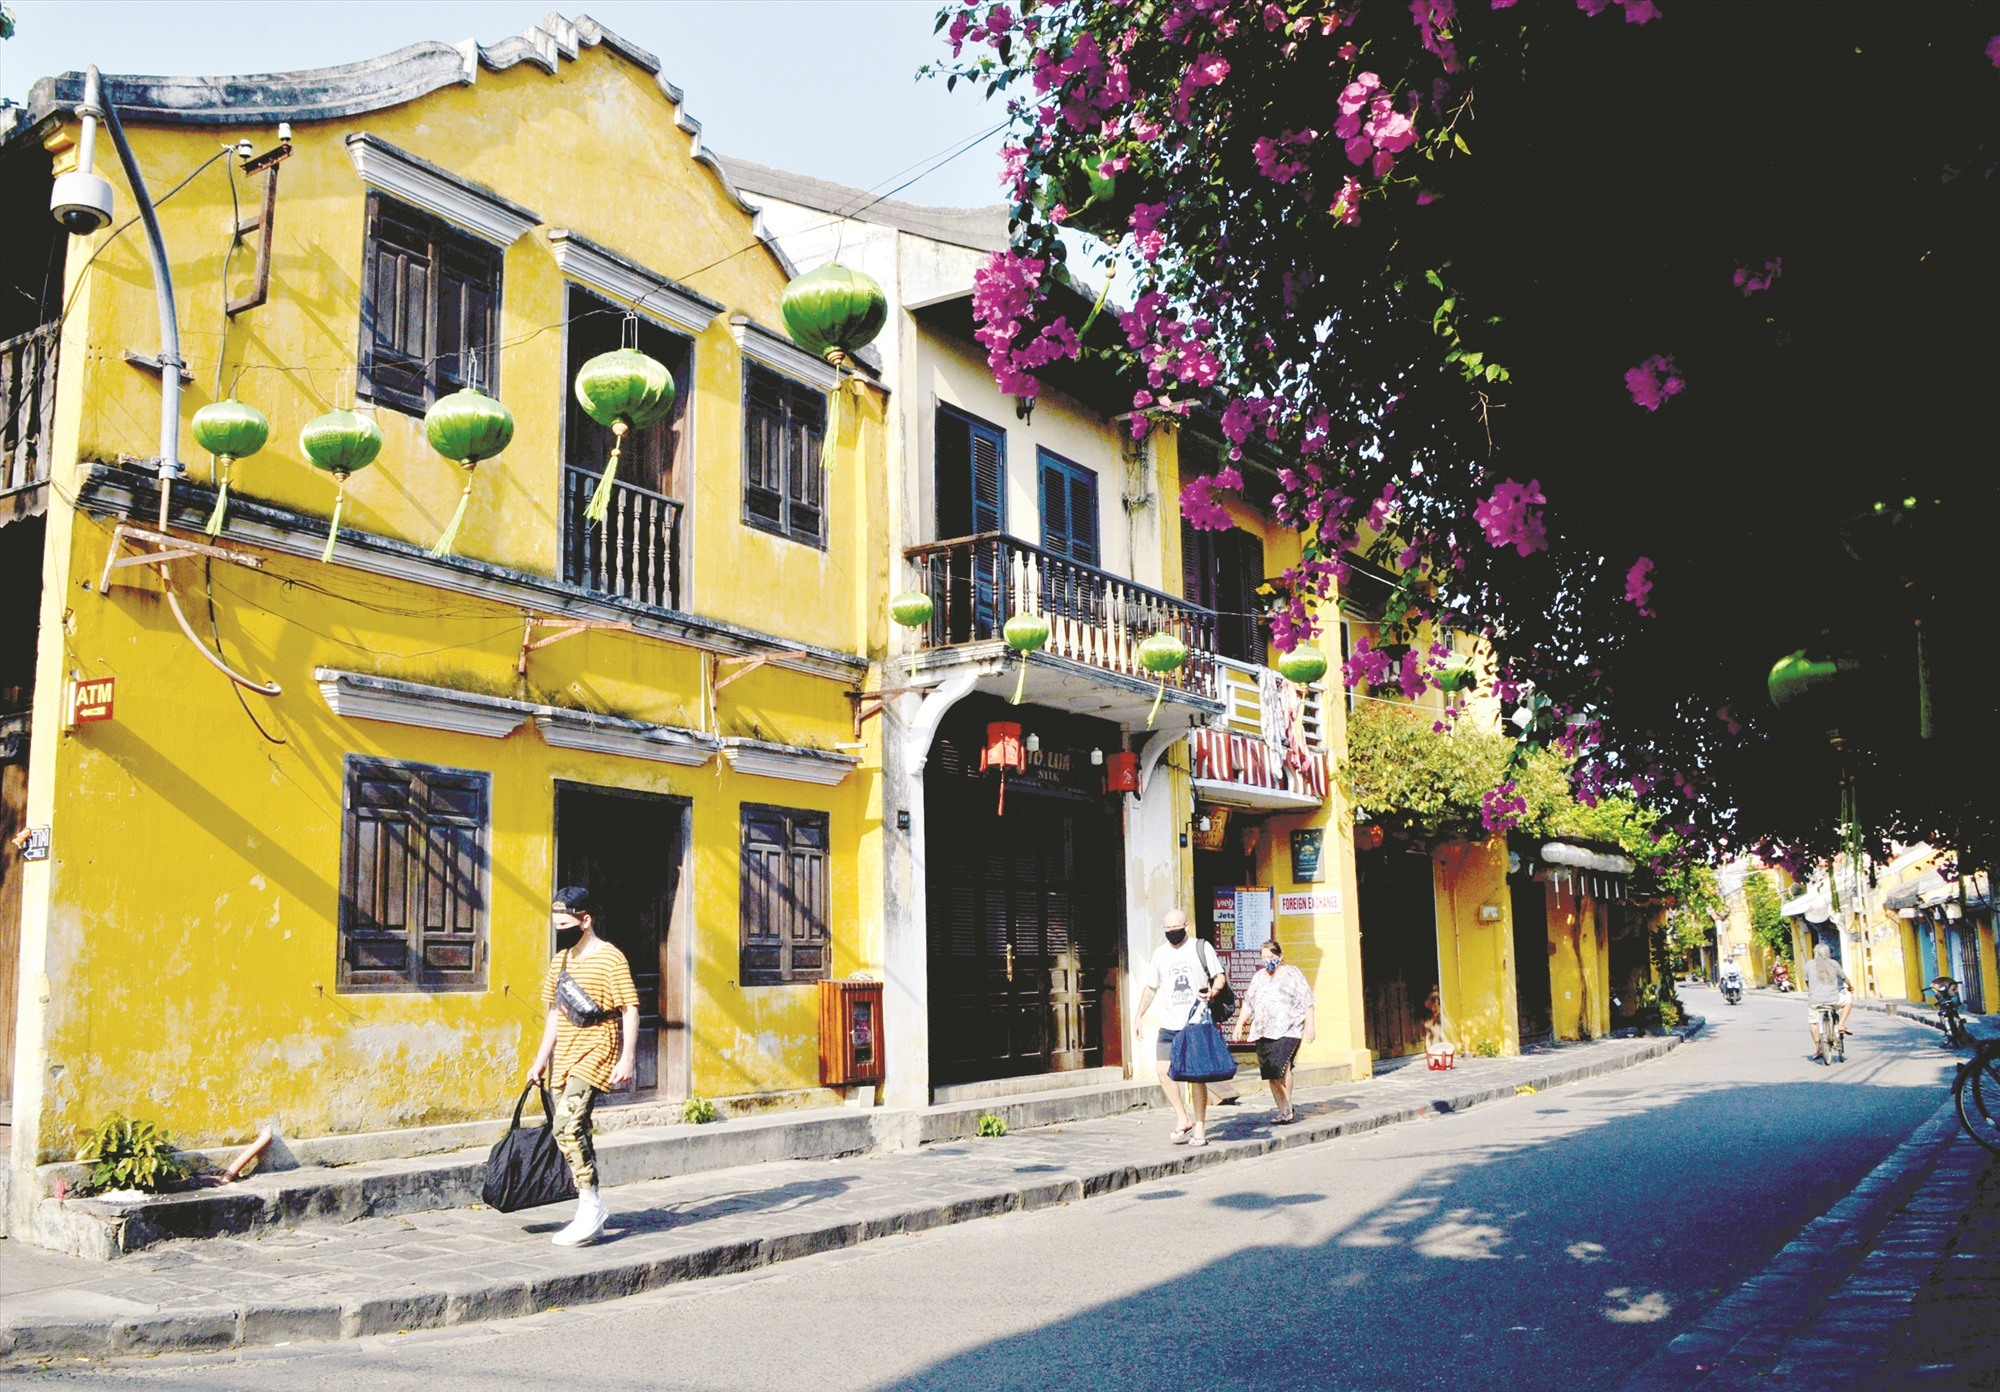 Tourists in Hoi An city wearing masks to prevent Covid-19 infection